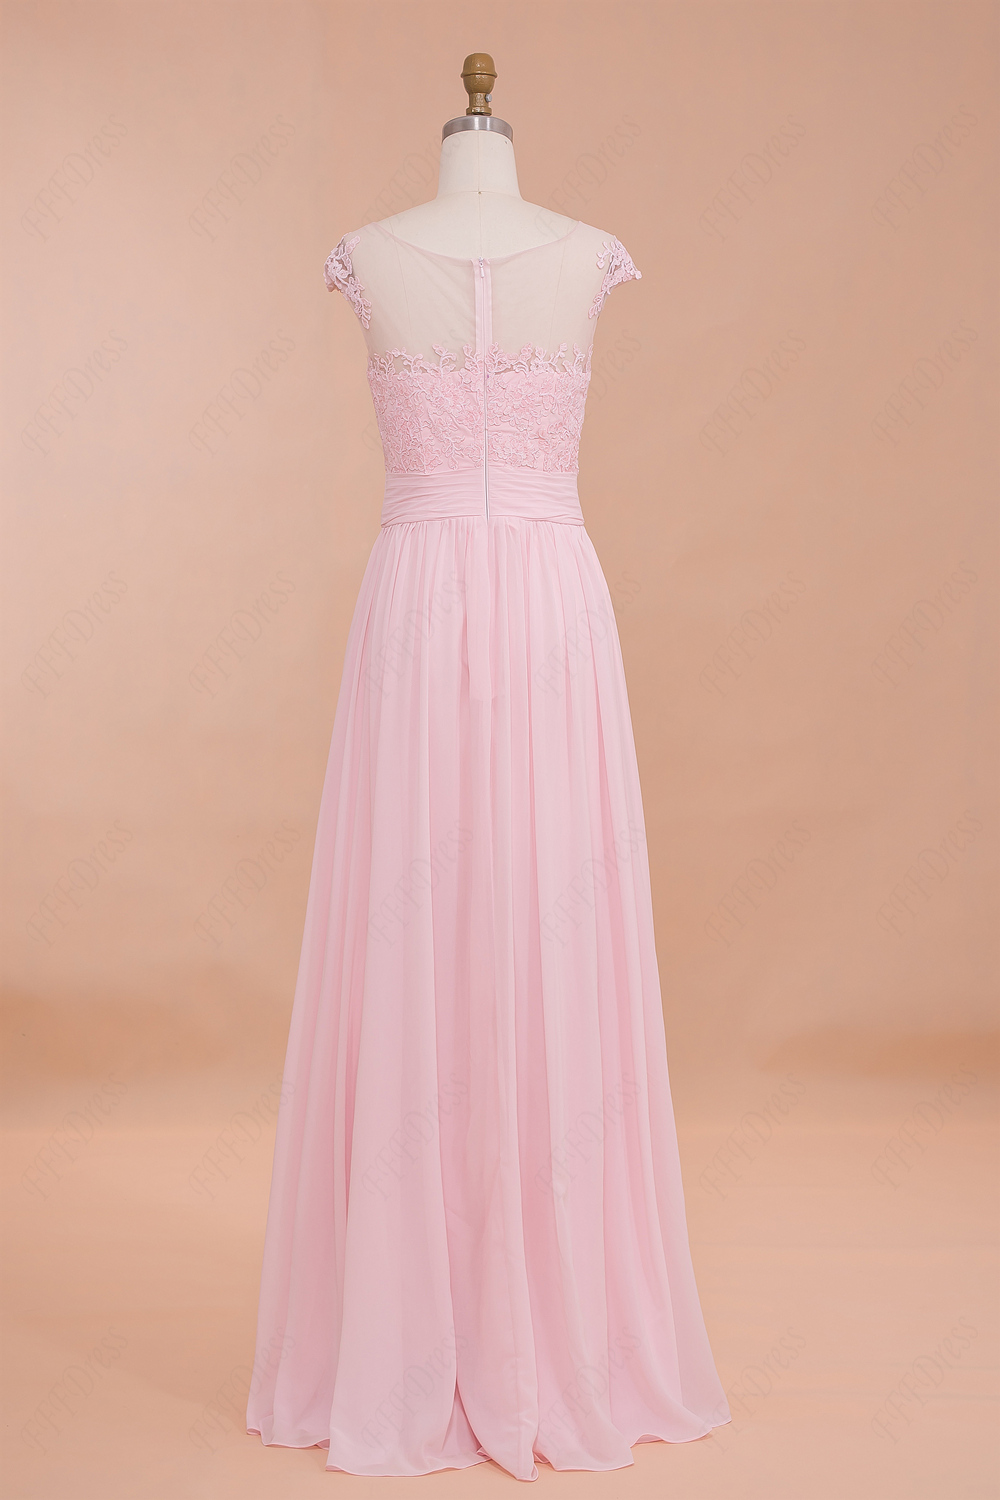 Classy modest pink prom dresses cap sleeves bridesmaid for Red wedding dresses with sleeves